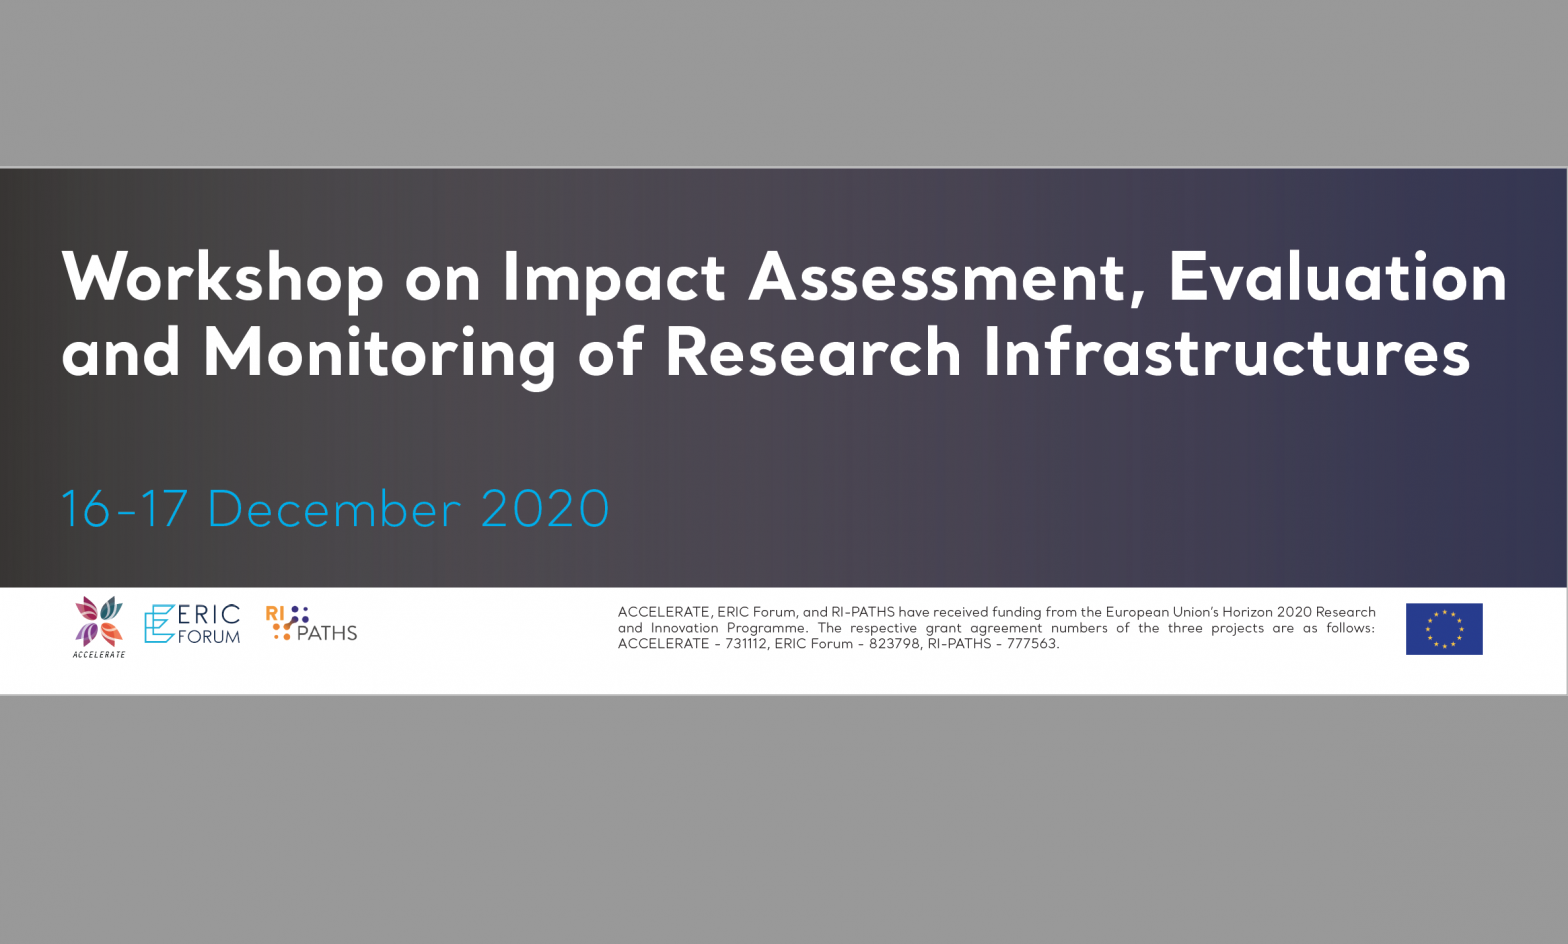 Workshop on Impact Assessment, Evaluation and Monitoring of Research Infrastructures: The presentations are now available